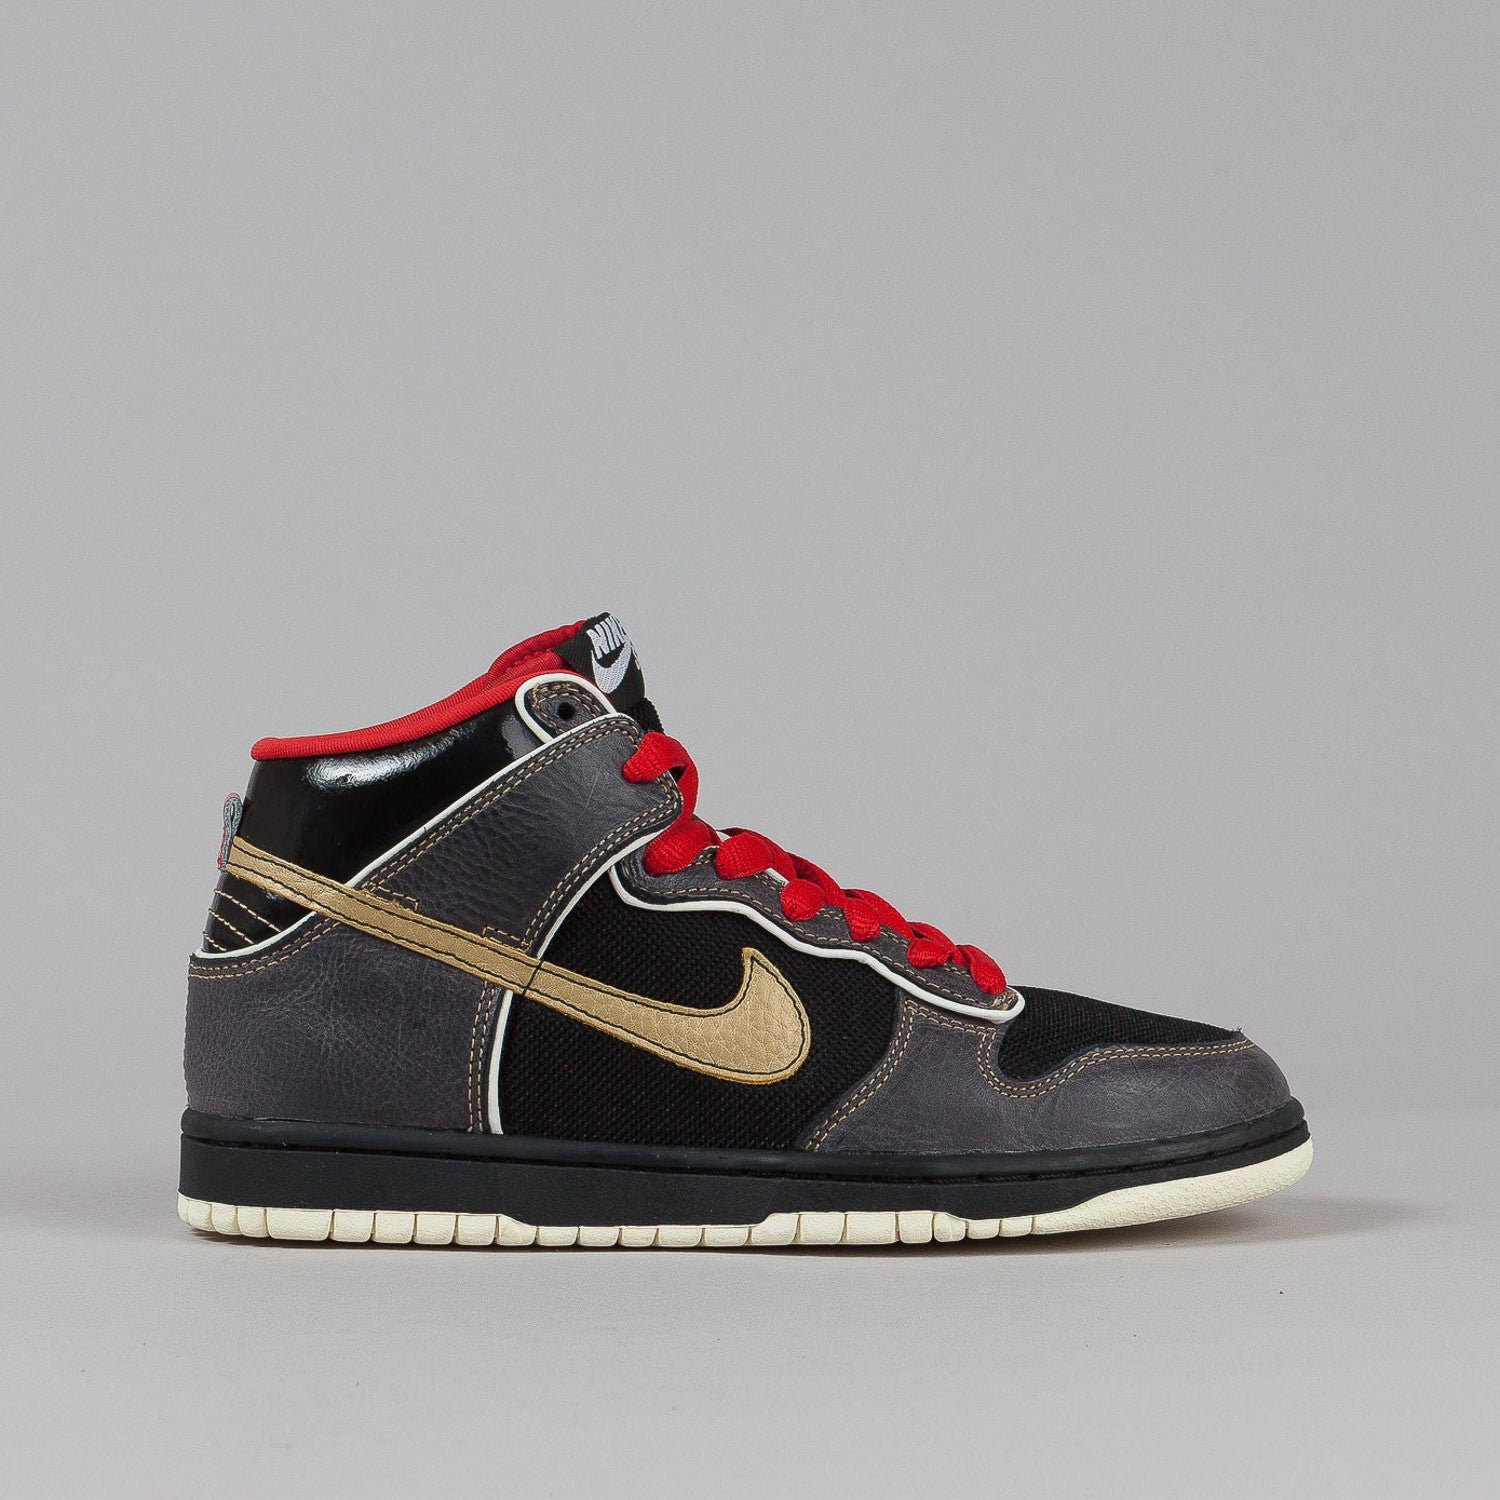 Nike SB Dunk High Premium Shoes